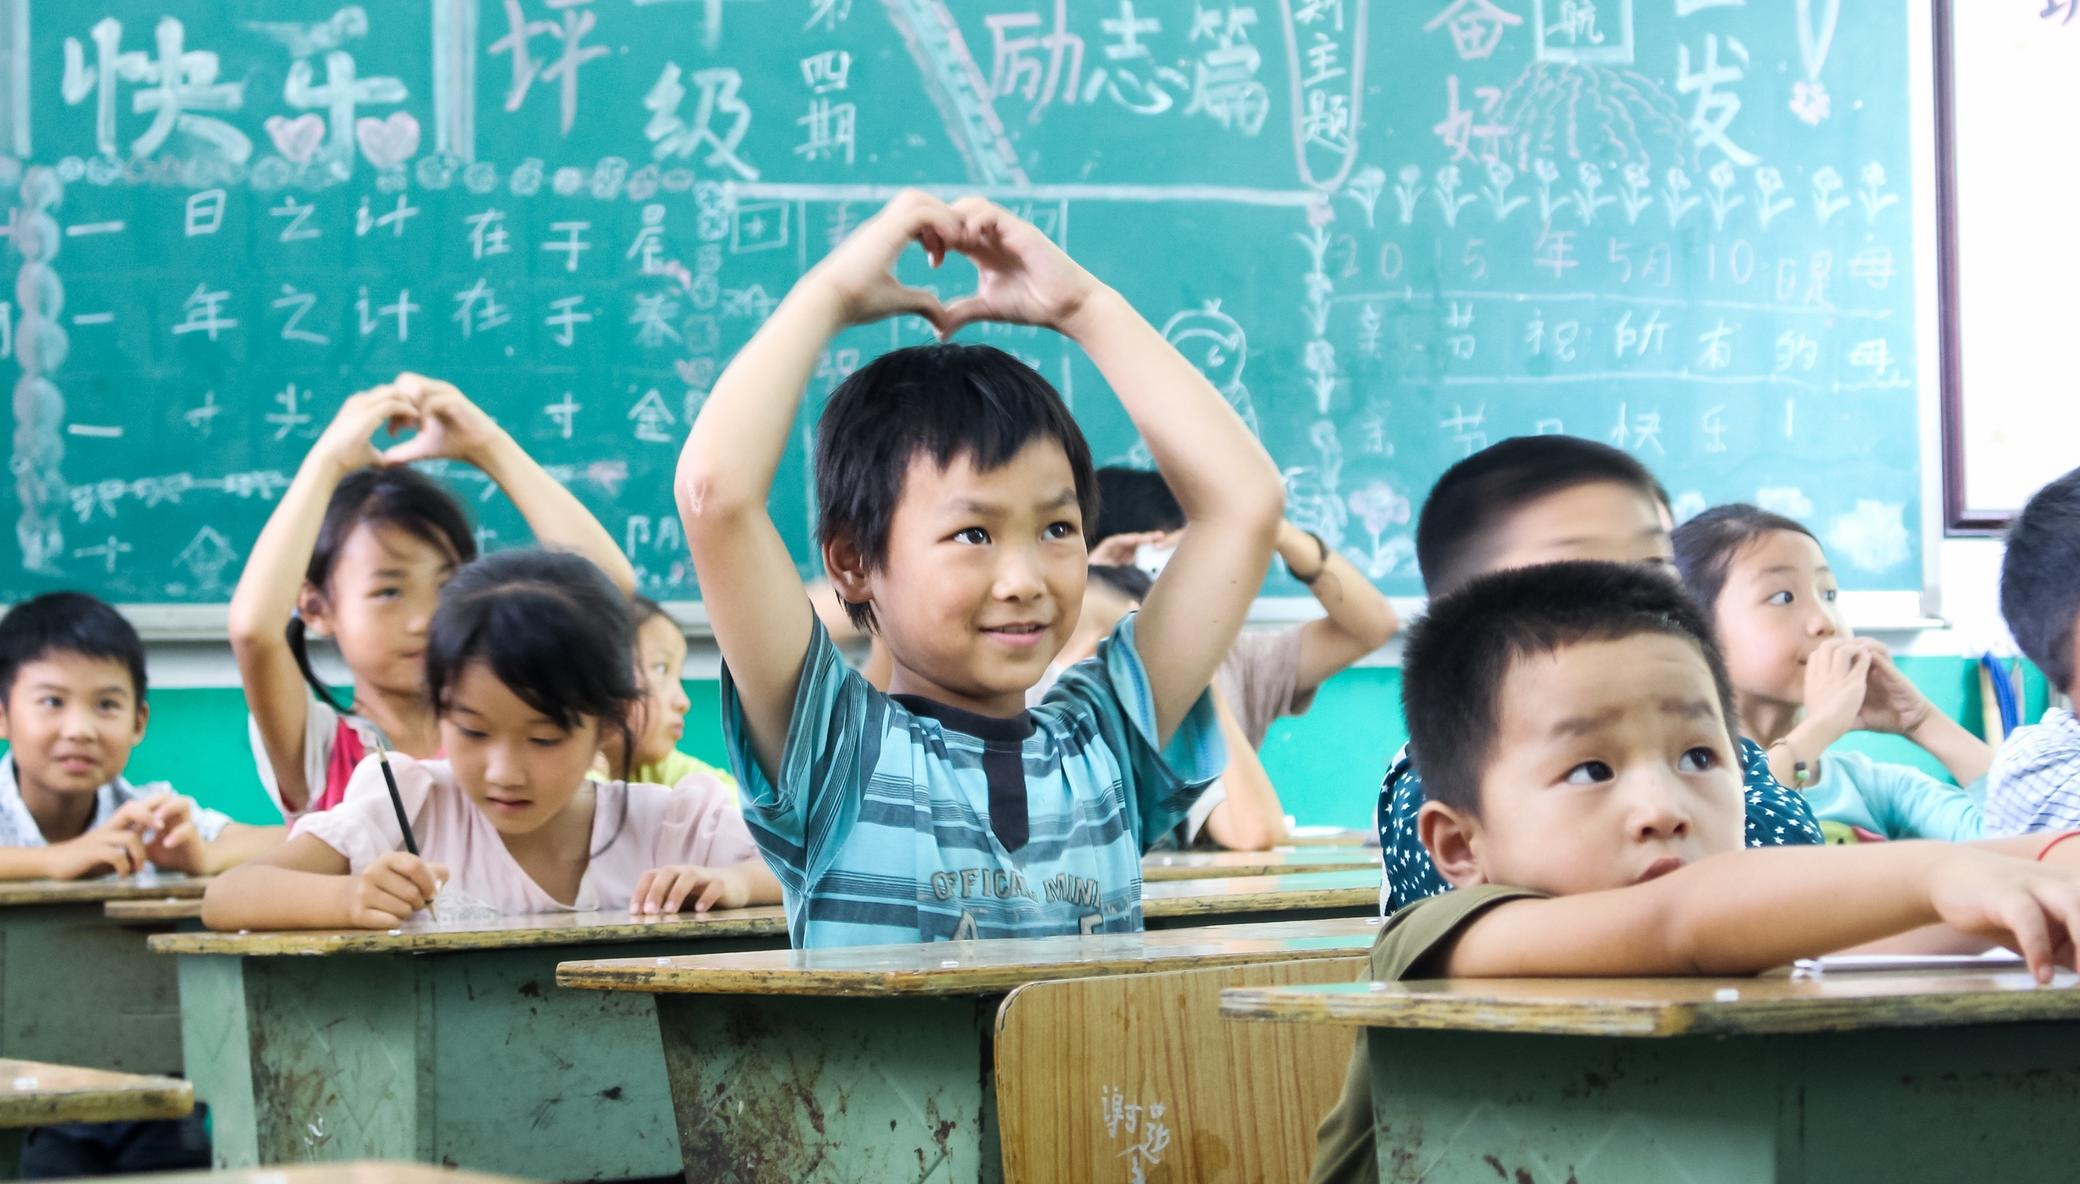 Mental Health Education for 5,000 Kids in China